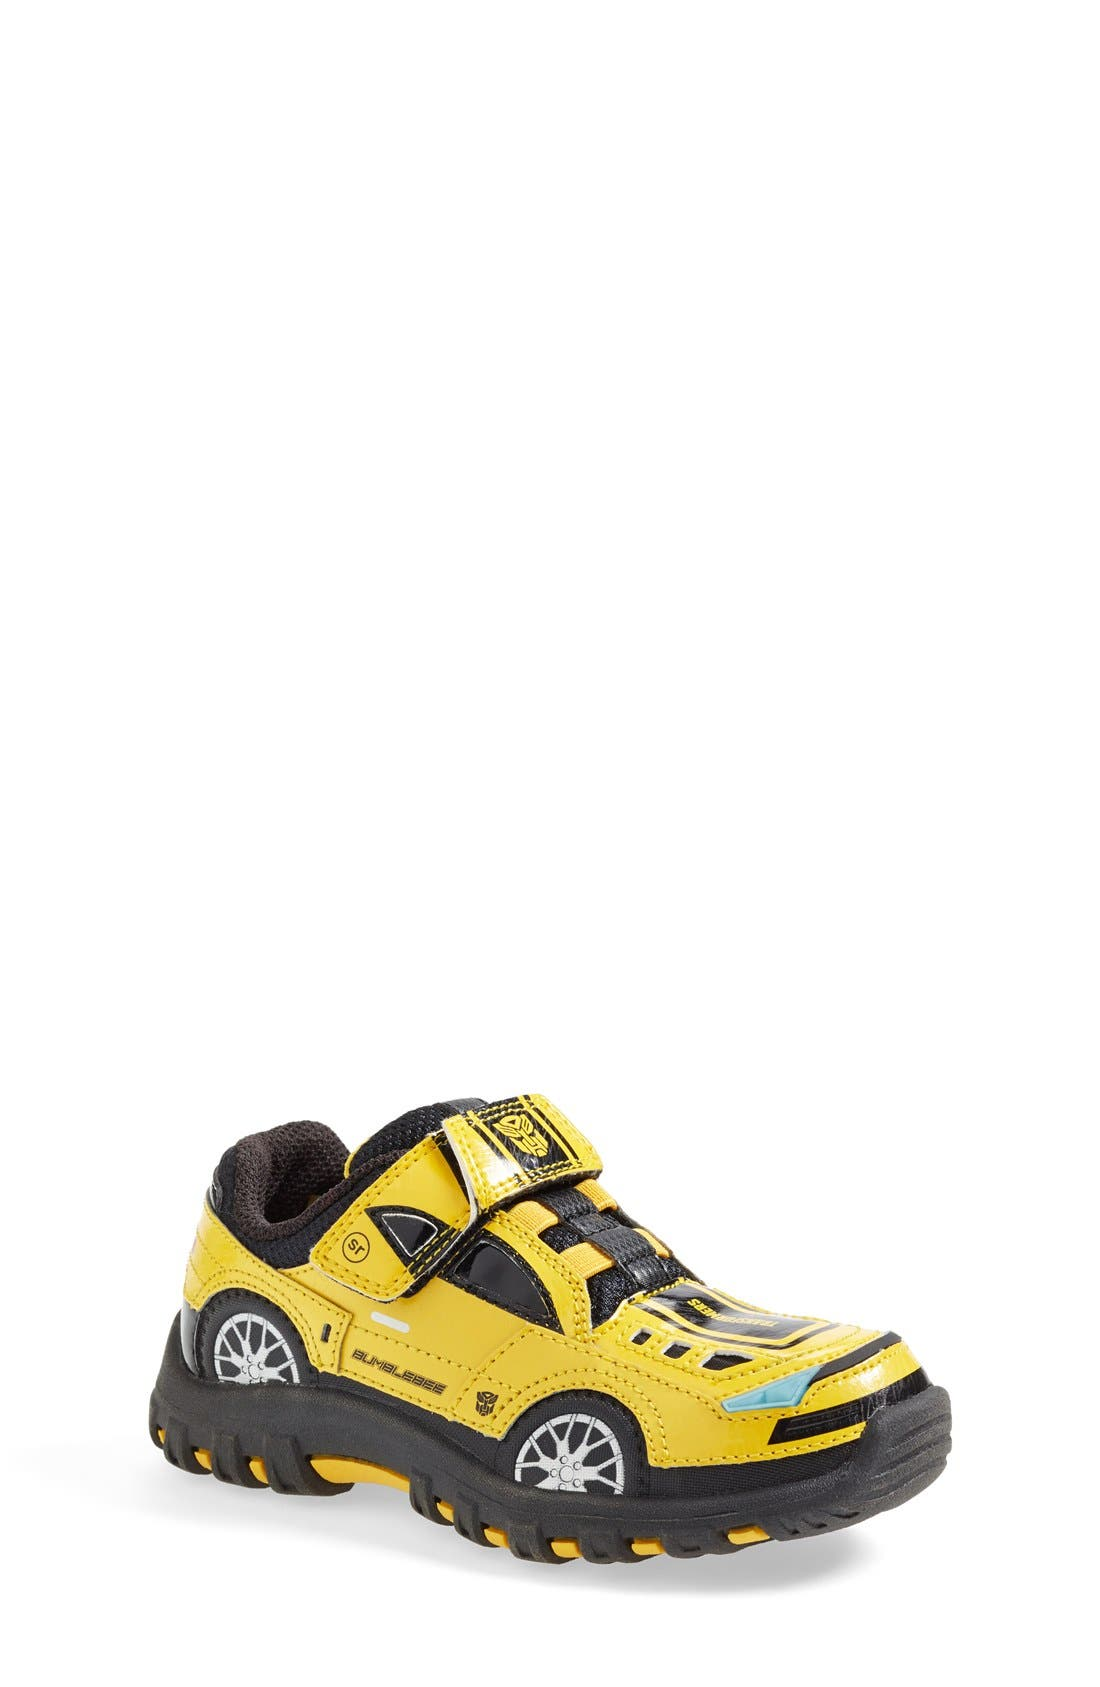 Main Image - Stride Rite 'Bumblebee™' Light-Up Sneaker (Online Only) (Walker, Toddler & Little Kid)